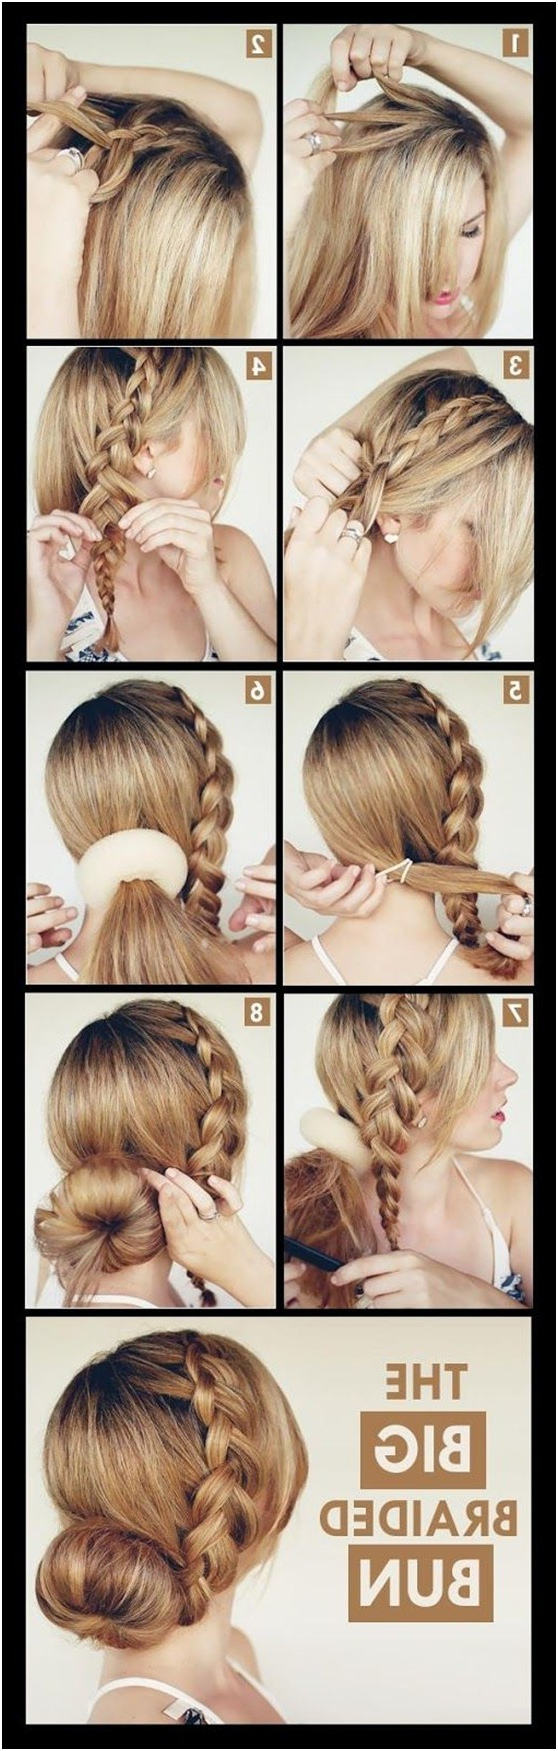 15 Braided Updo Hairstyles Tutorials – Pretty Designs Intended For Favorite Twisted Rope Braid Updo Hairstyles (Gallery 15 of 20)